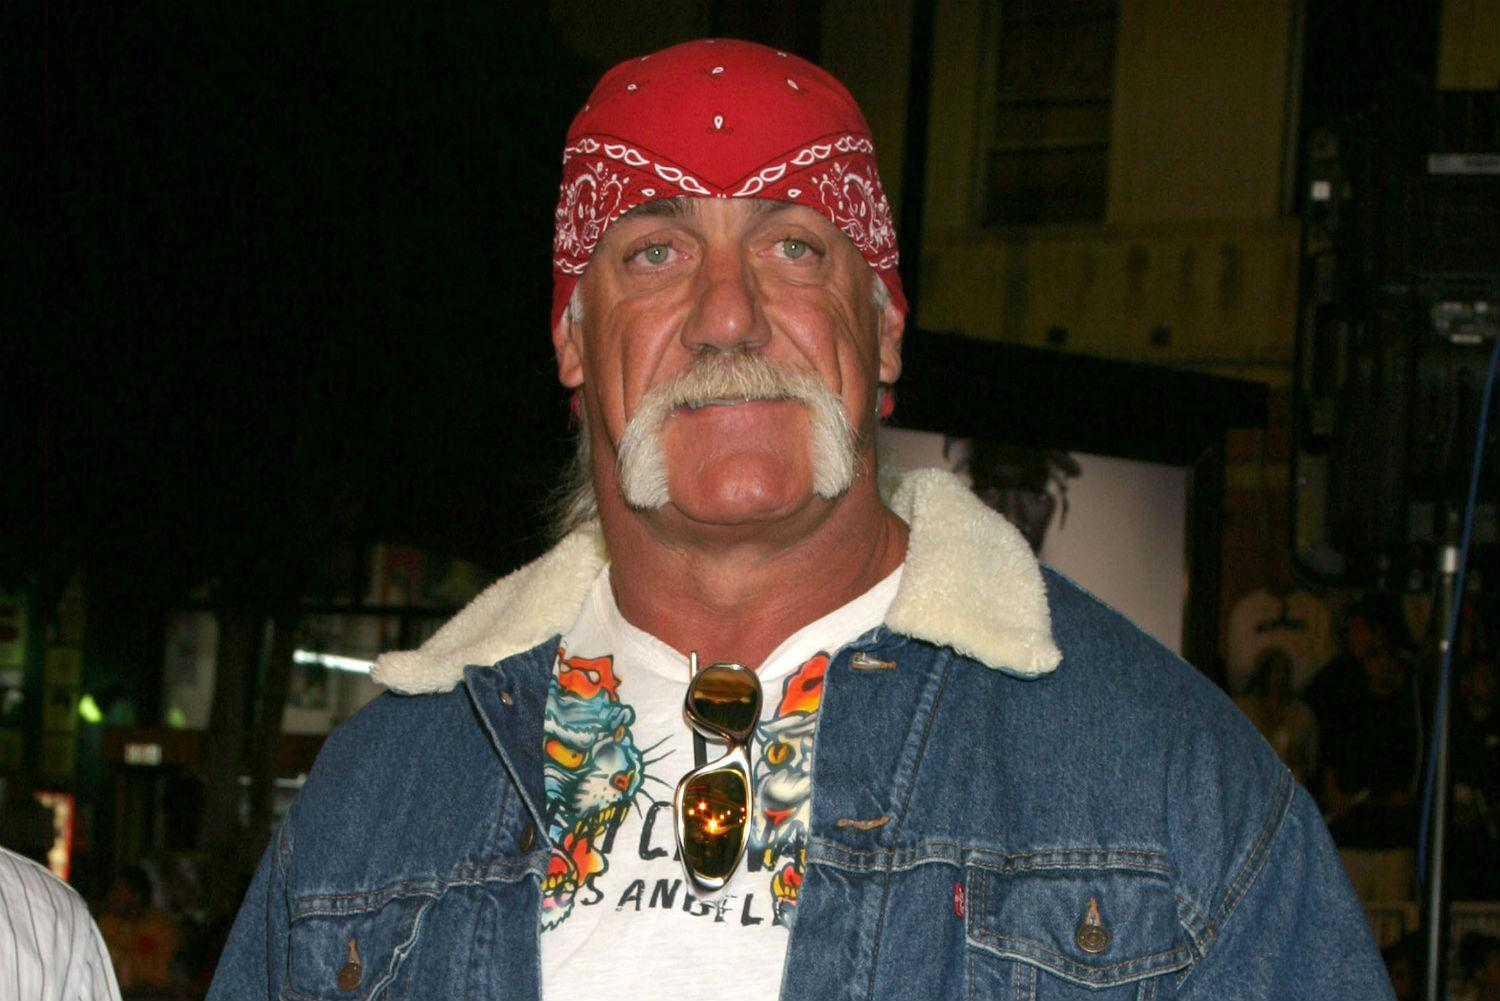 Hulk Hogan 2017 Gawker Files For Chapter 11 Bankruptcy Deal In Place To